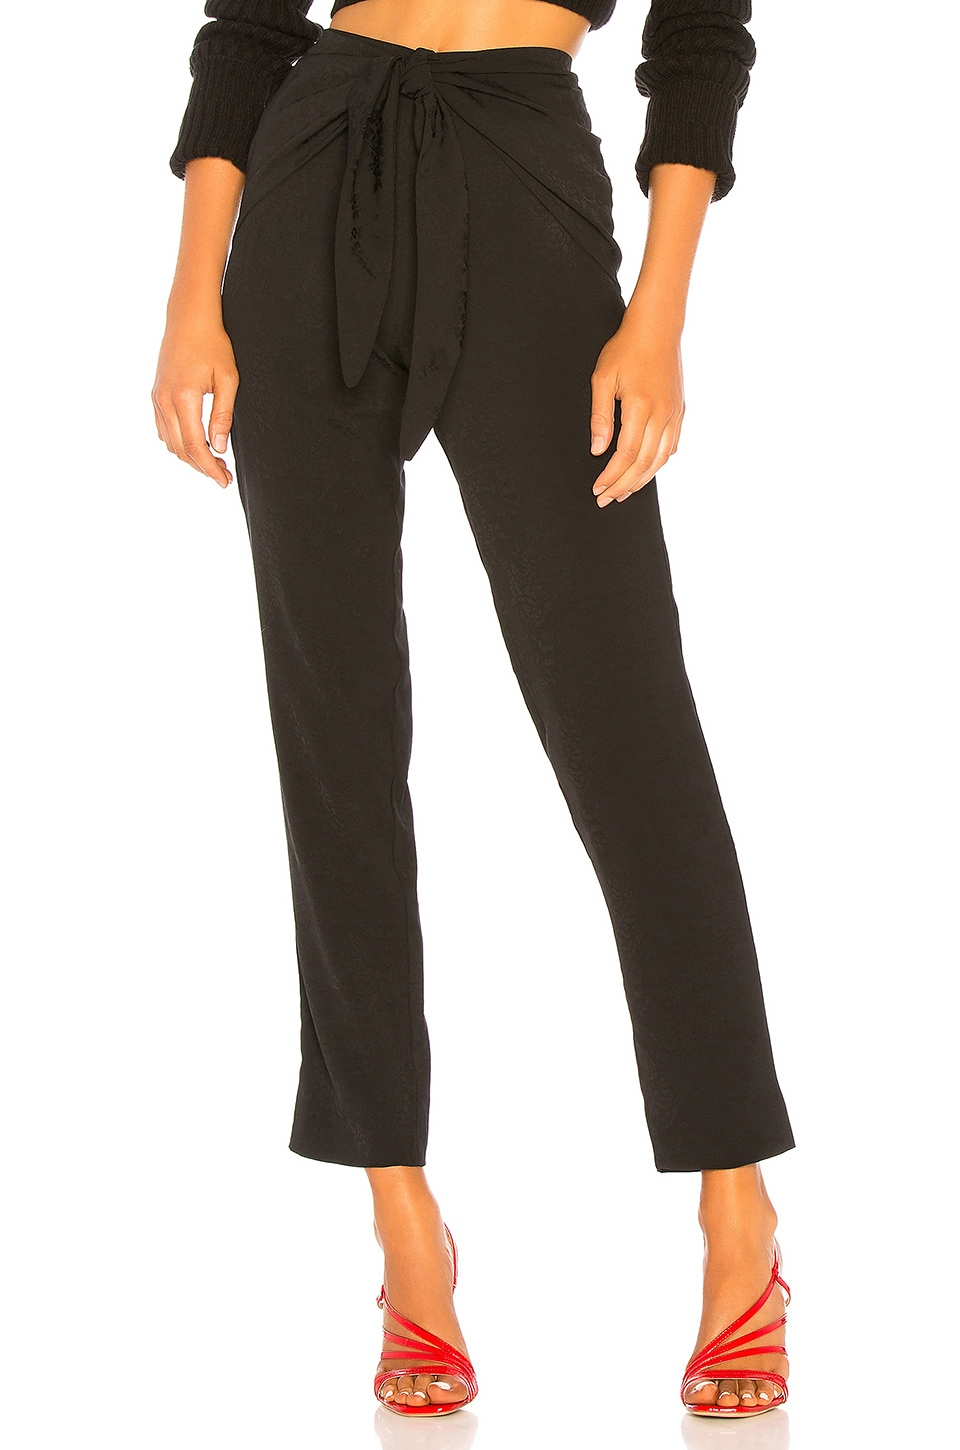 House of Harlow 1960 x REVOLVE Tabitha Pant in Noir